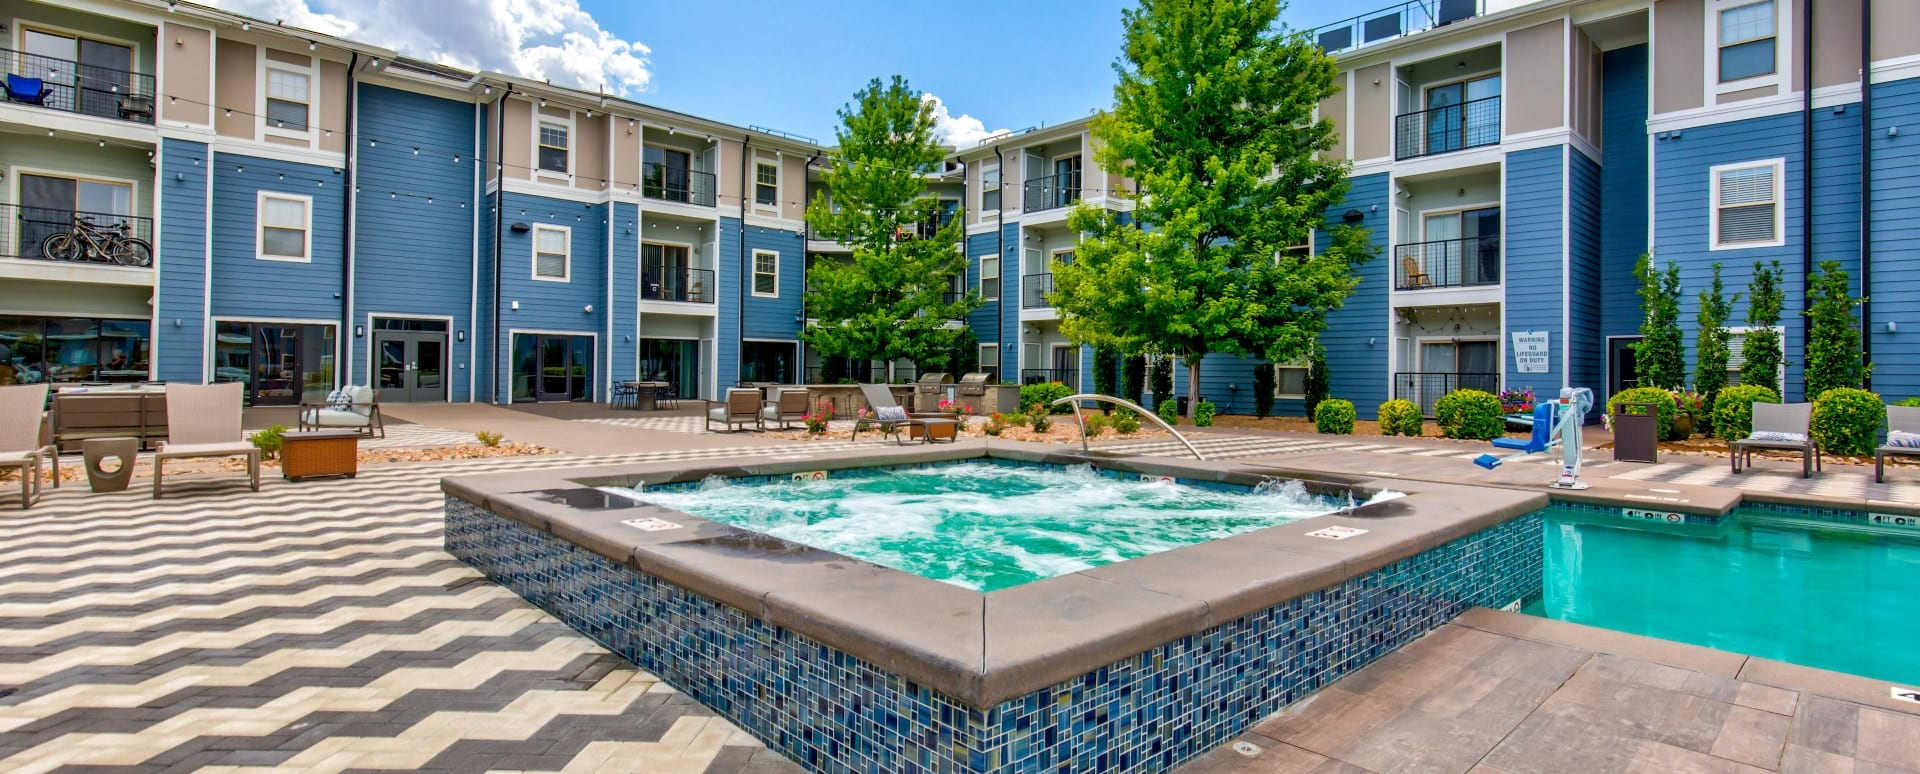 Resort-style pool and spa at our apartments near Denver